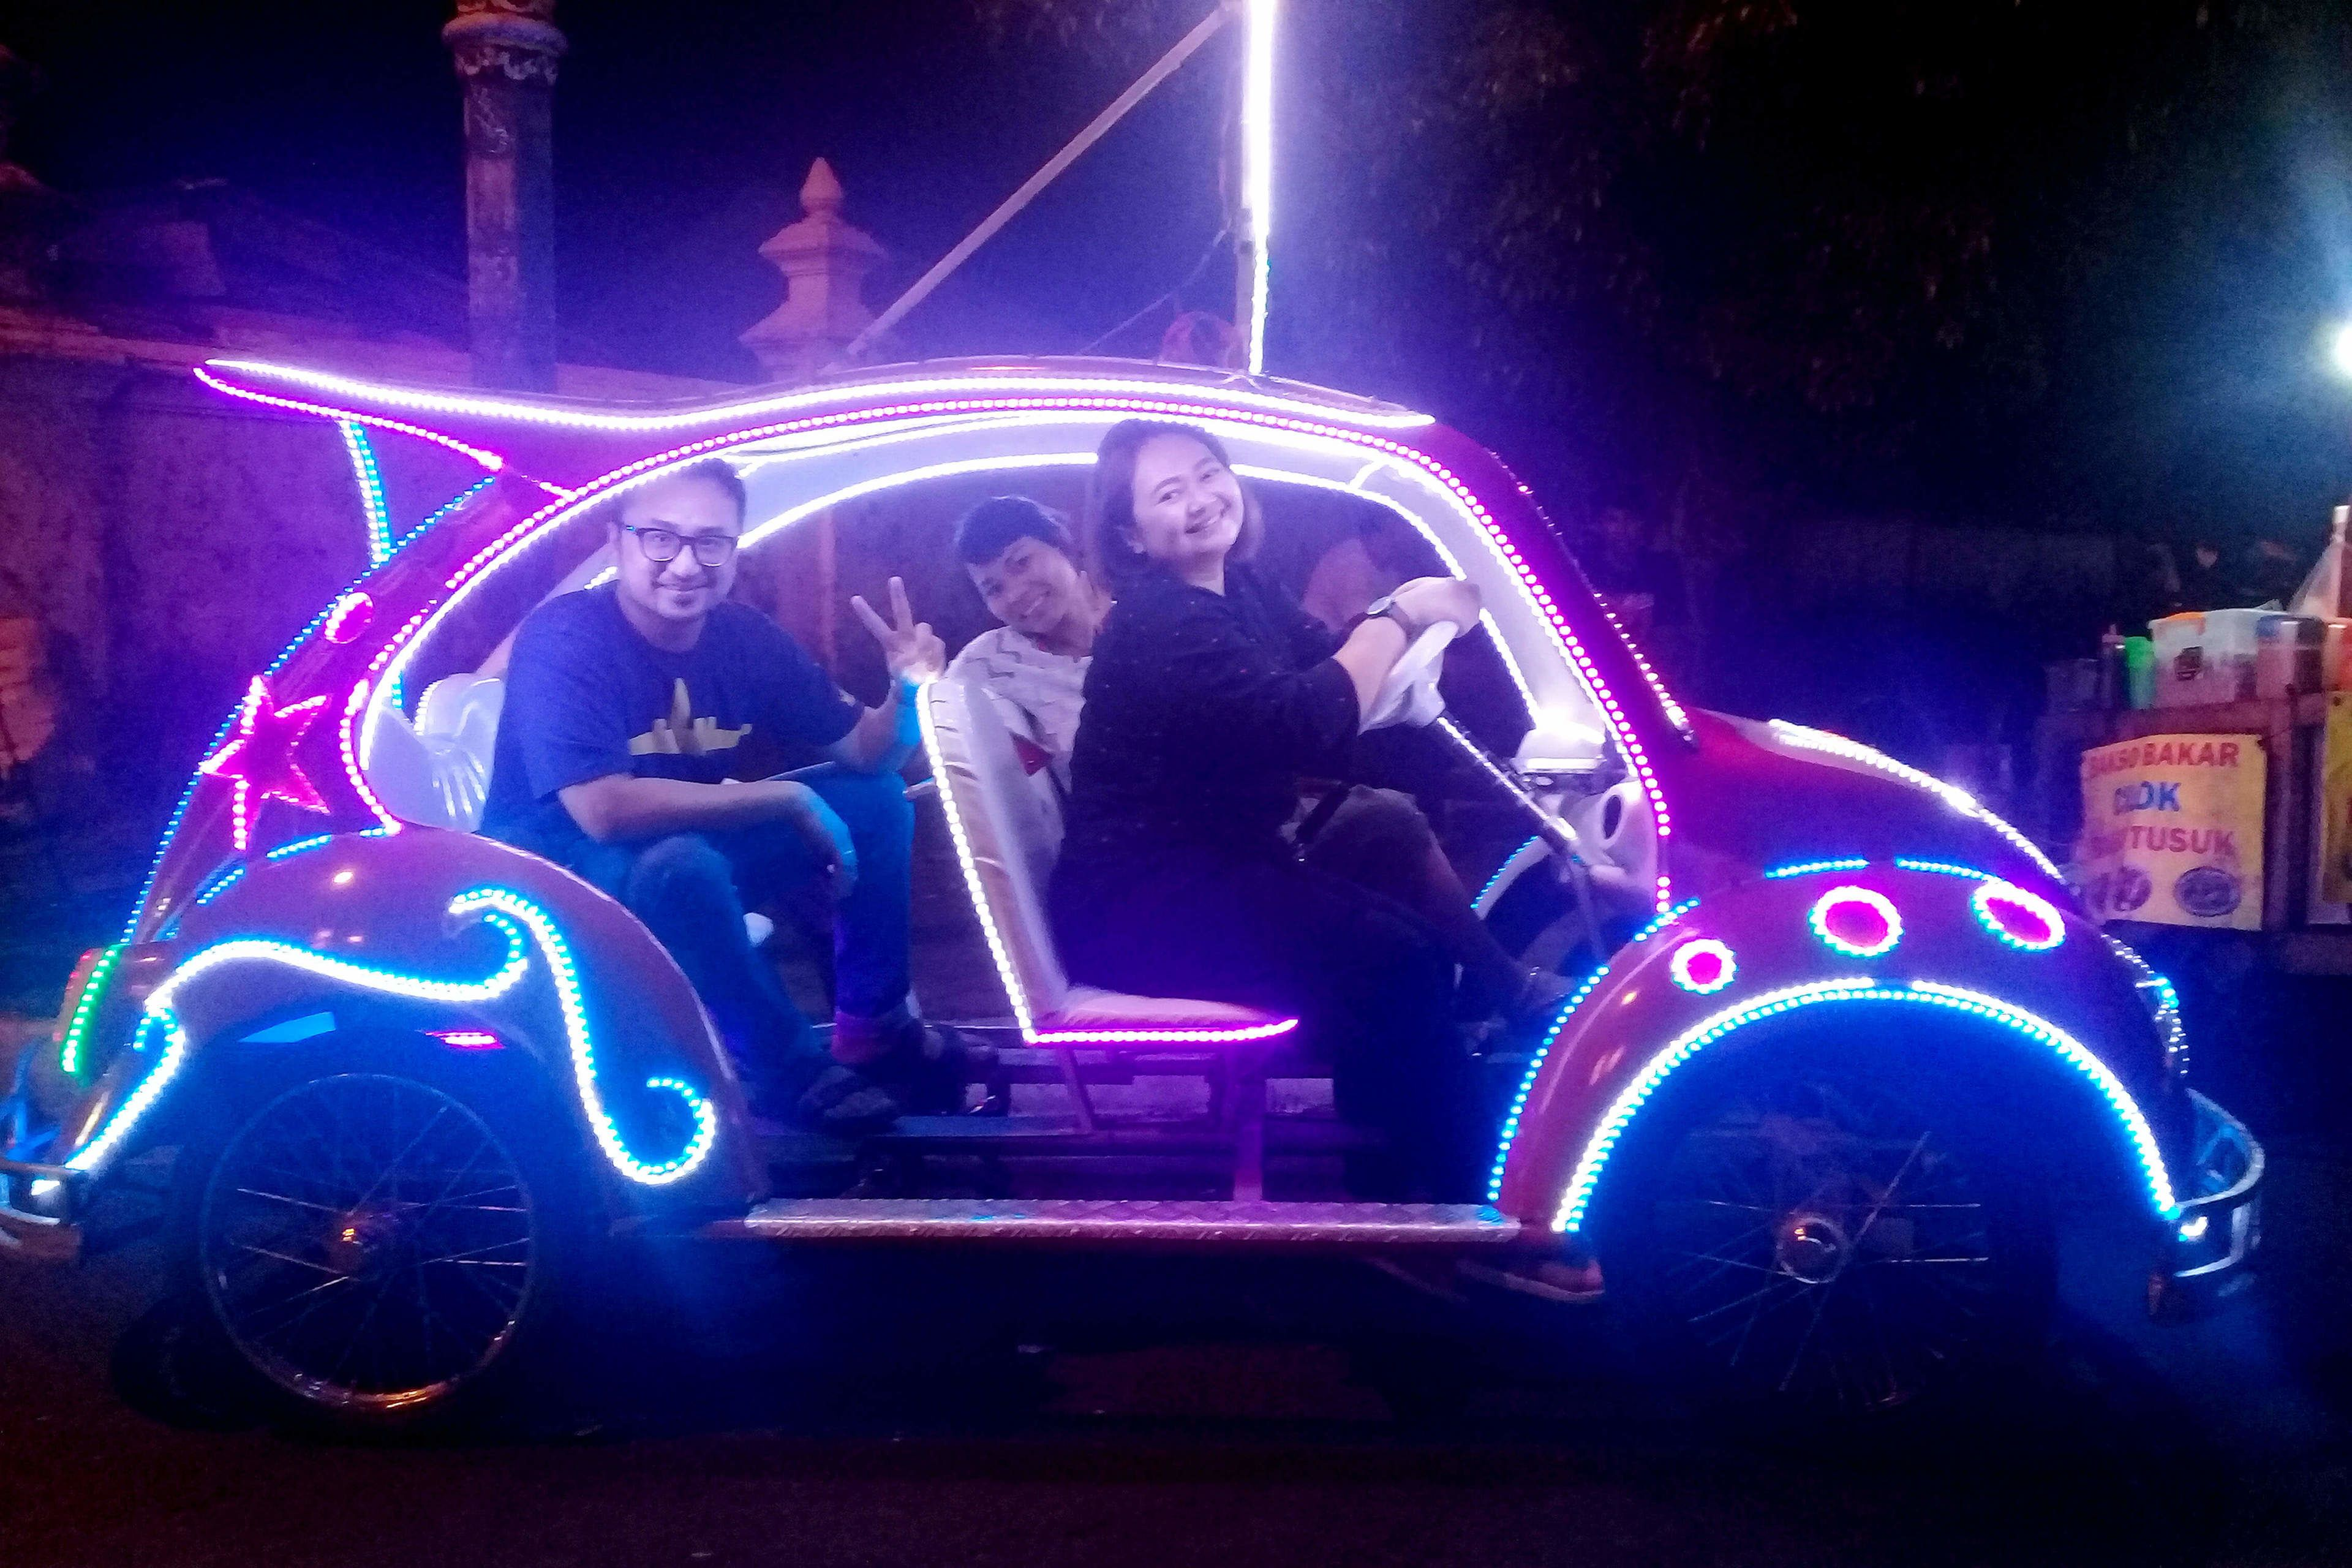 Tour group sitting in a car with lights on the Yogyakarta Night Food Tour